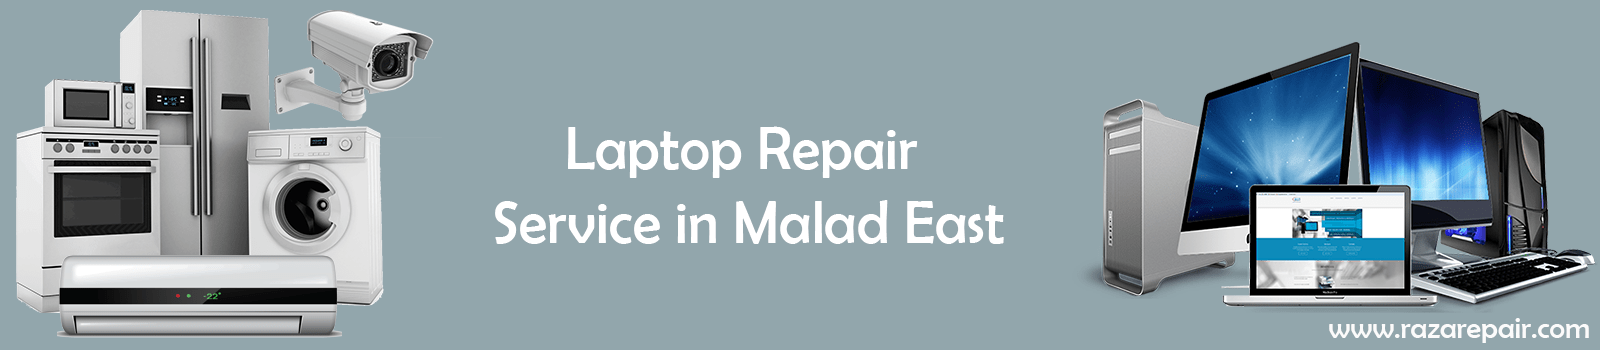 Laptop Repair Service in Malad East | Call Now 8655112626